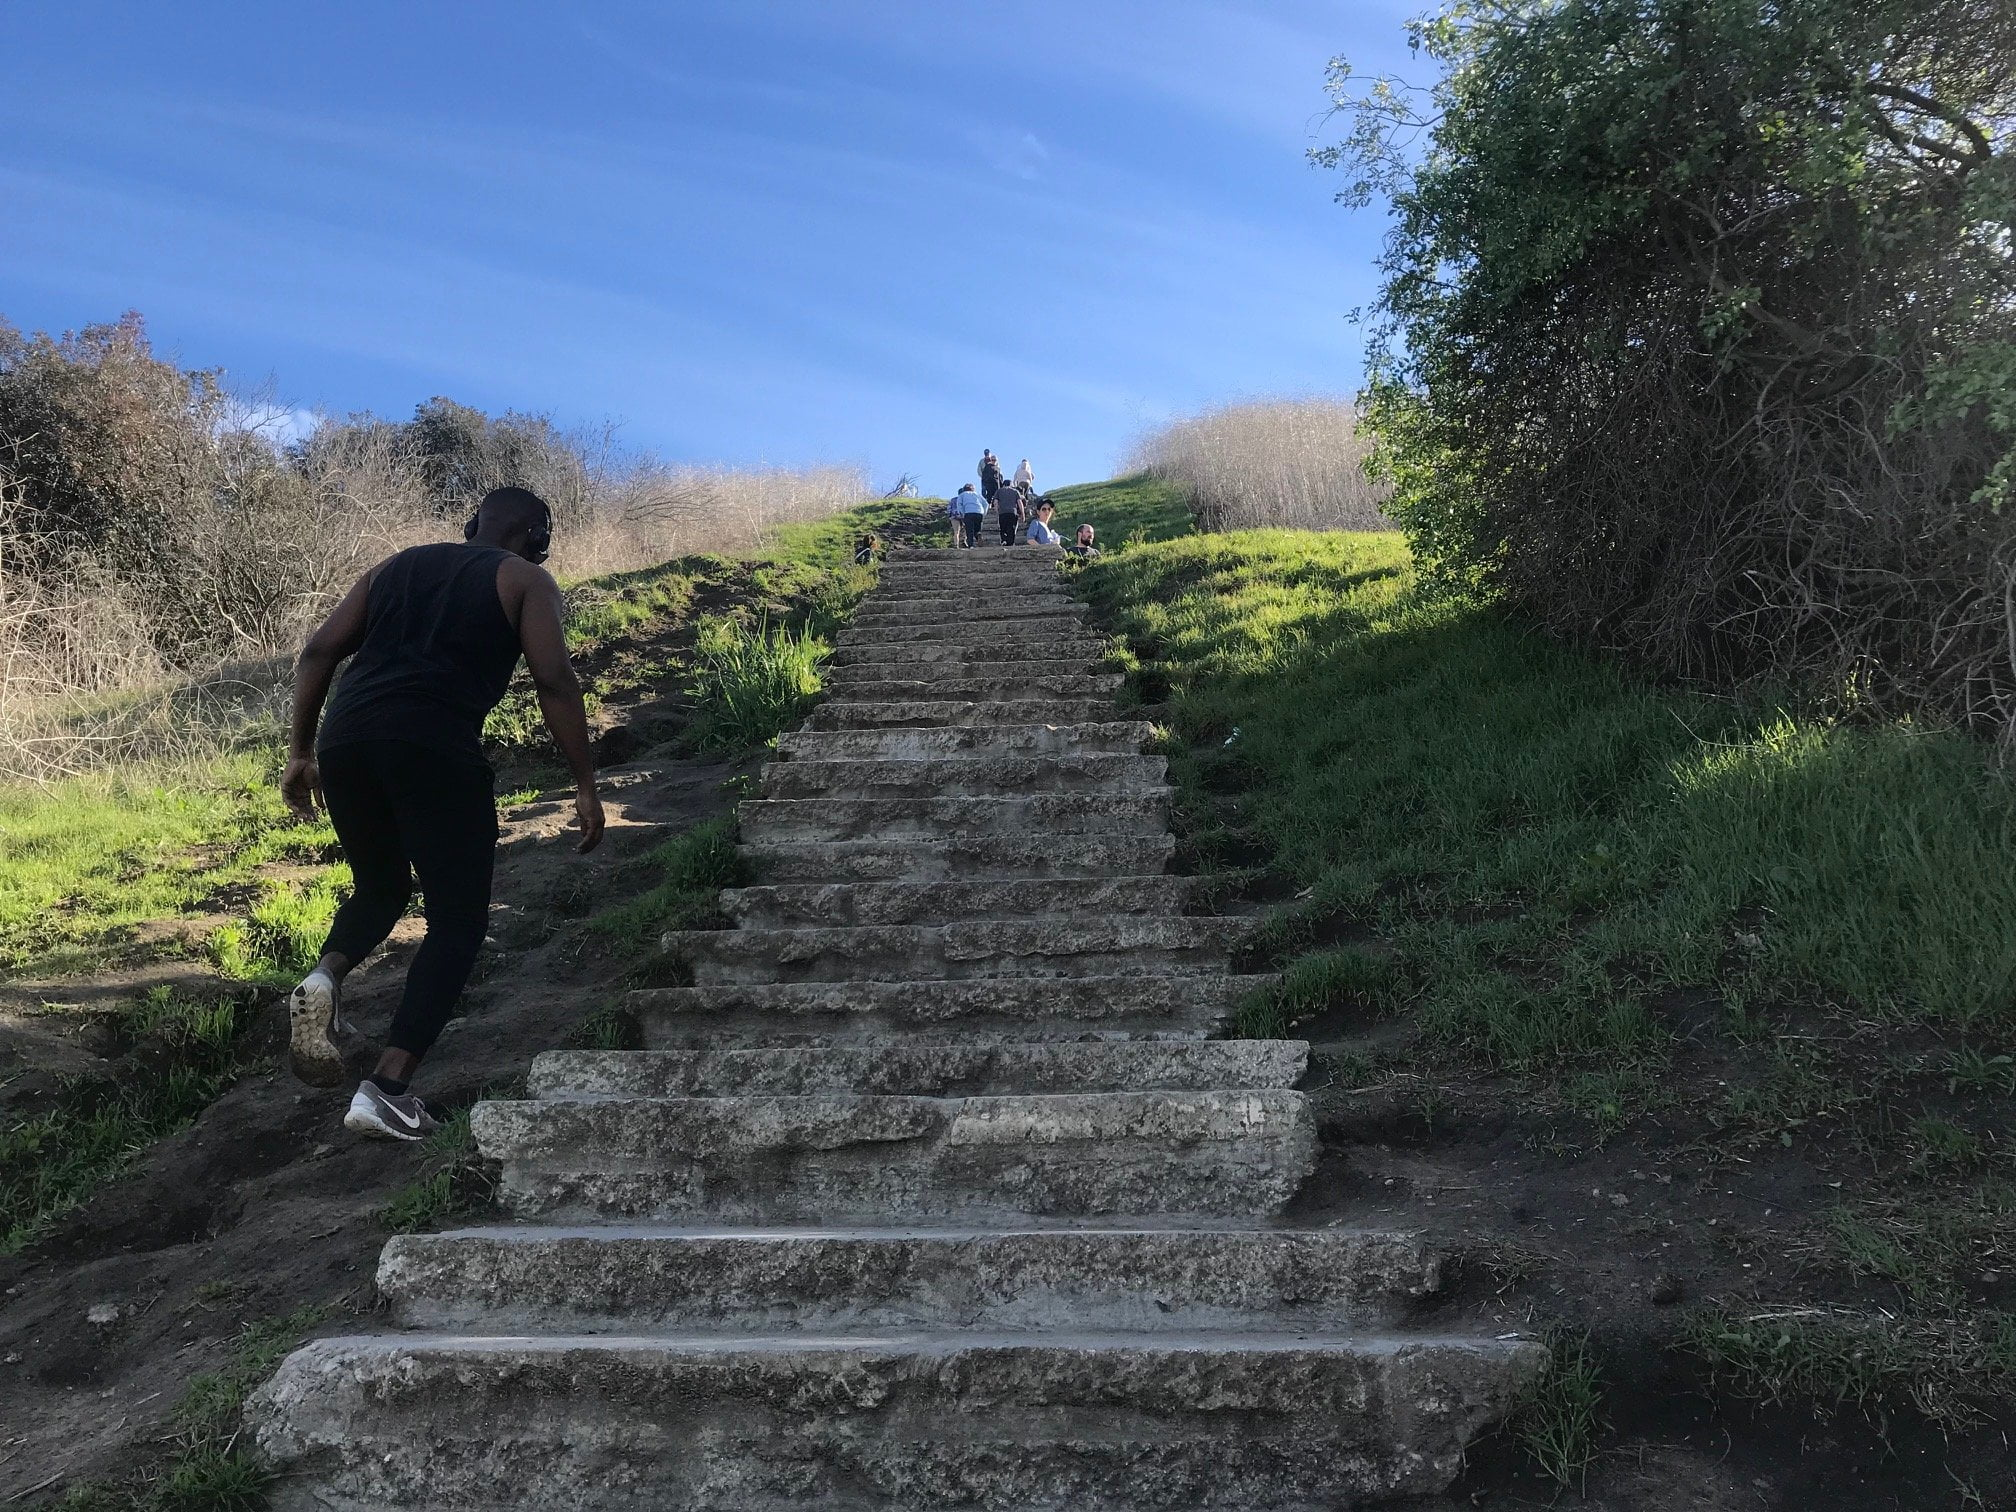 Culver City Stairs steps up the mountain